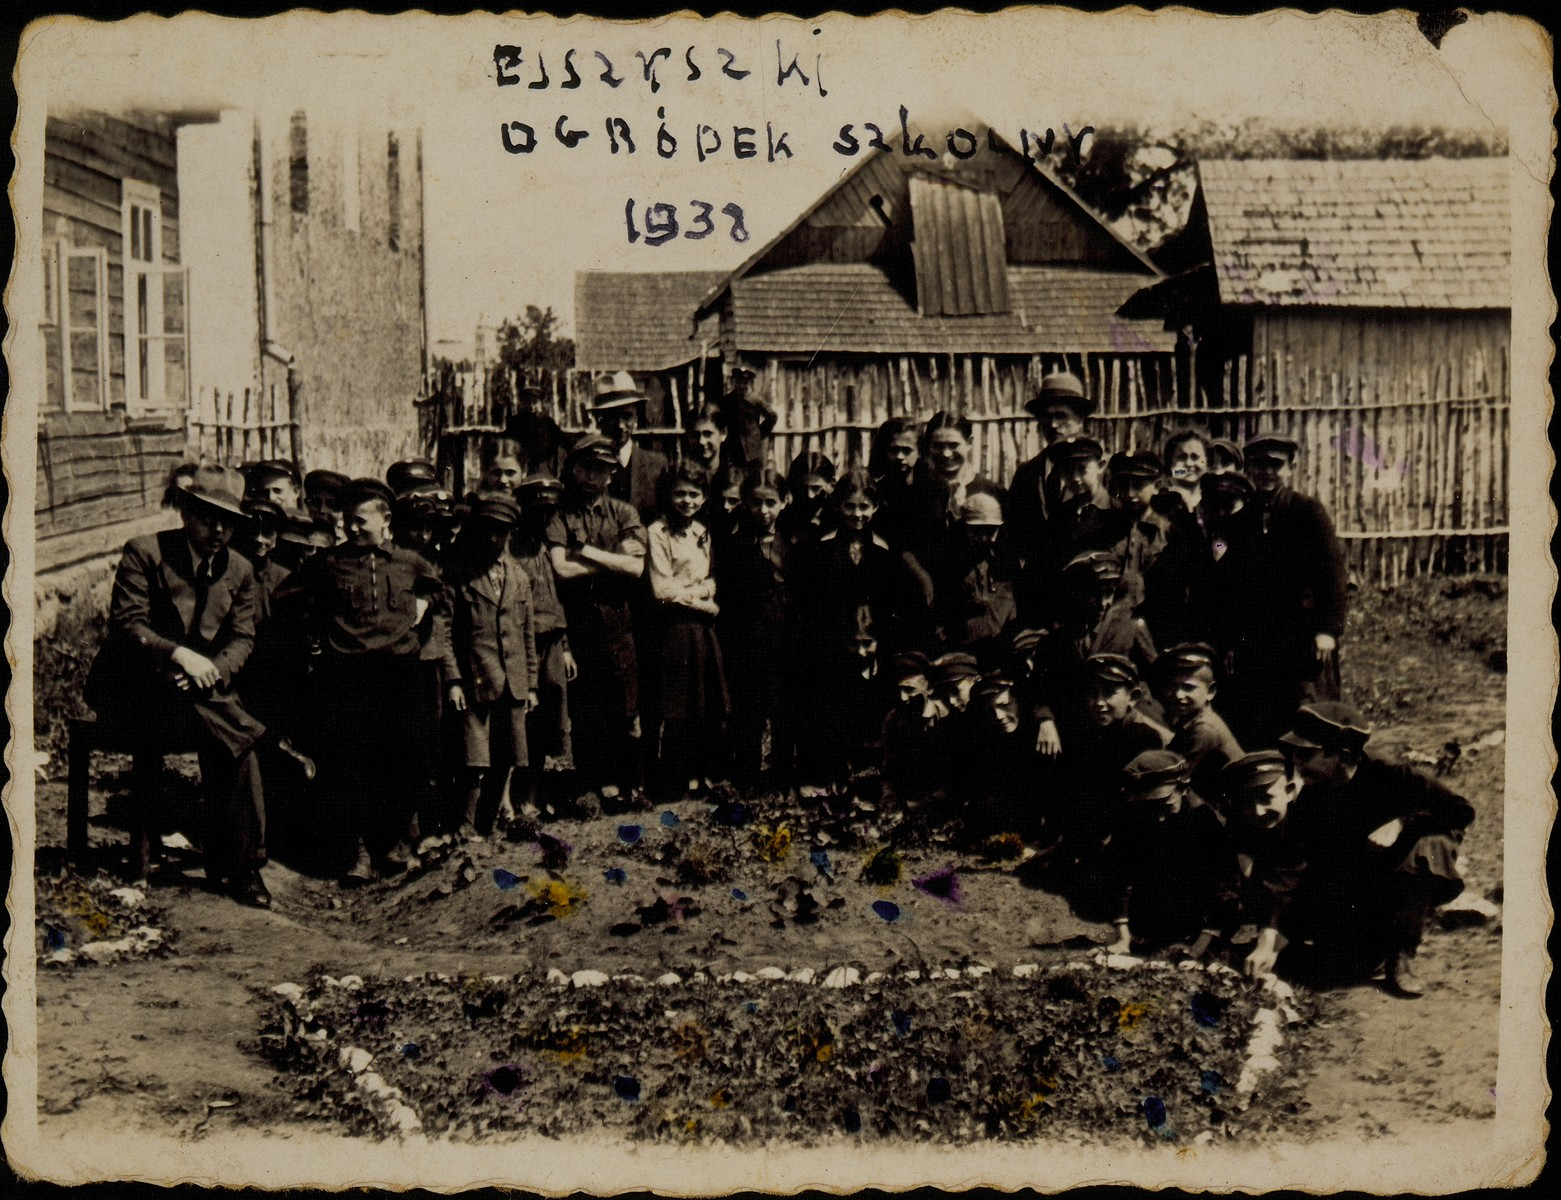 Children from the Hebrew School work in the school's garden in preparation for immigration to Palestine.  Supervising them are three of their teachers: Okun, Shael Michalowski, and a teacher from the city of Belski. Most of the children and teachers were murdered during the Holocaust.